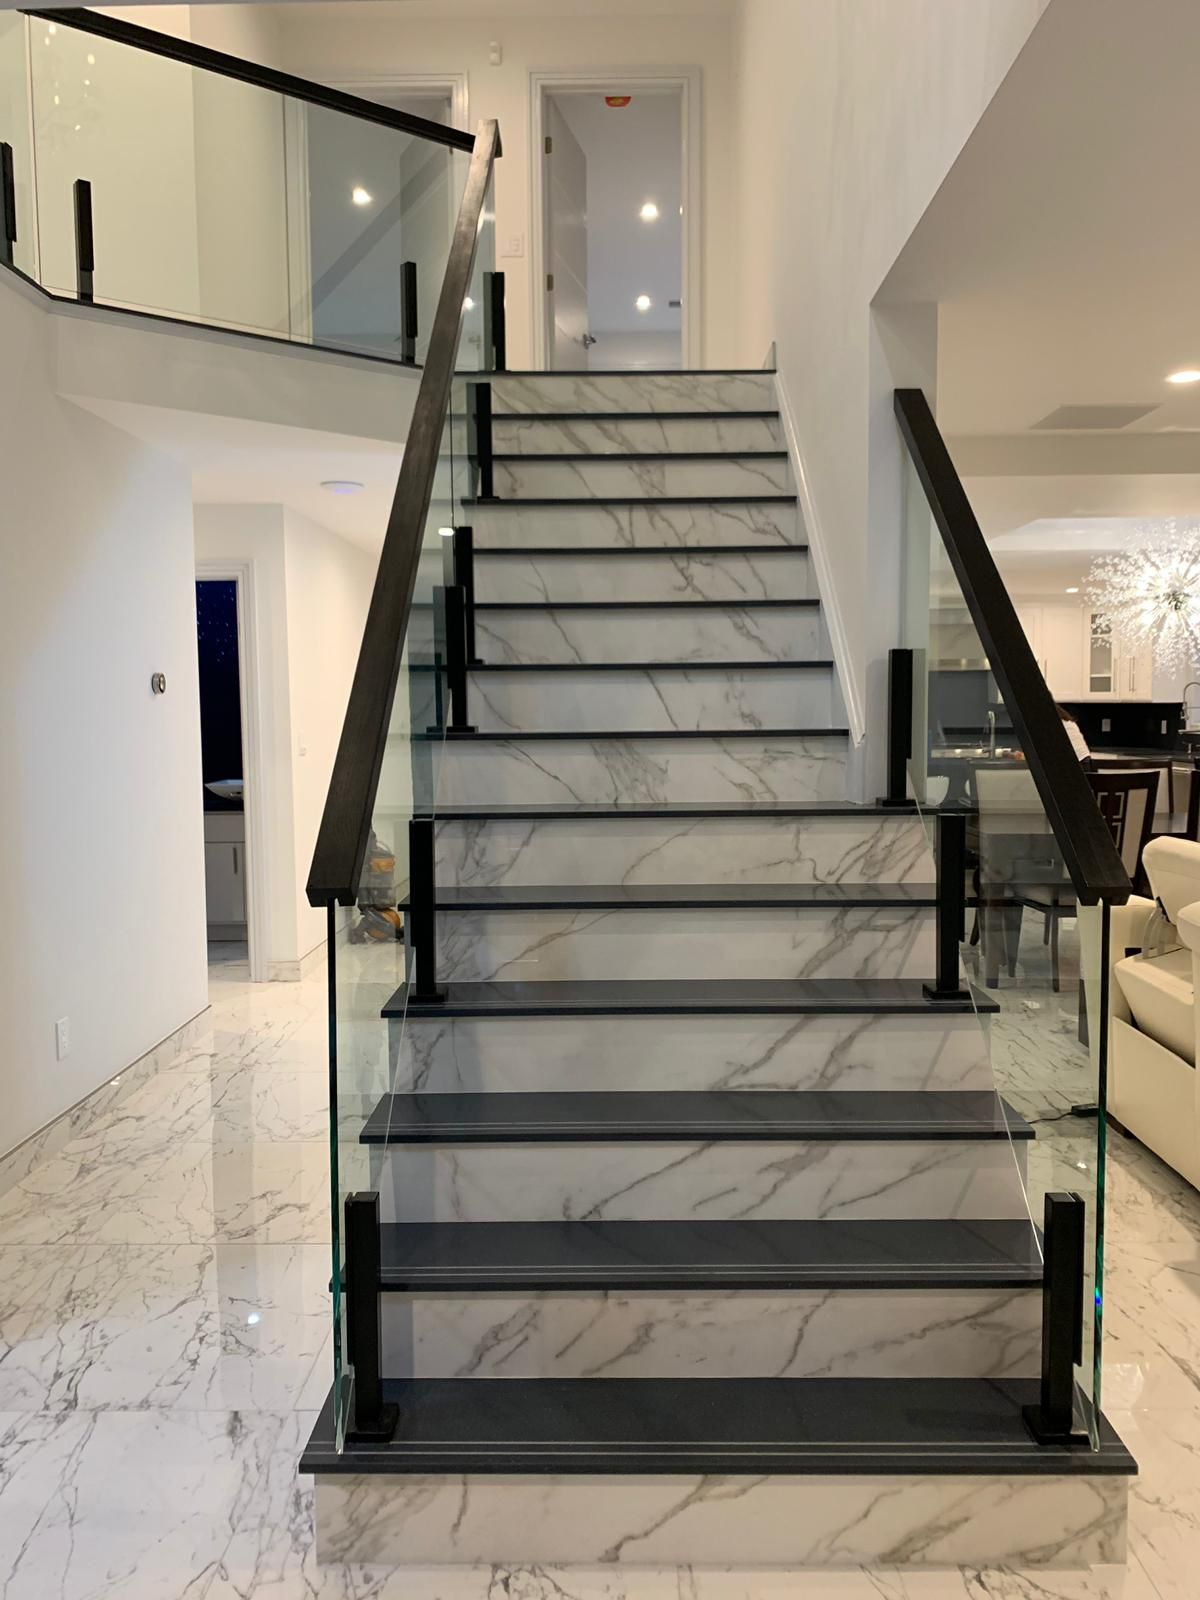 100 Best Glass Railing For Stairs Glass Enclosures Images In | Wooden Handrail With Glass | Oak | Square | Marble | Landing | Nautical Wood